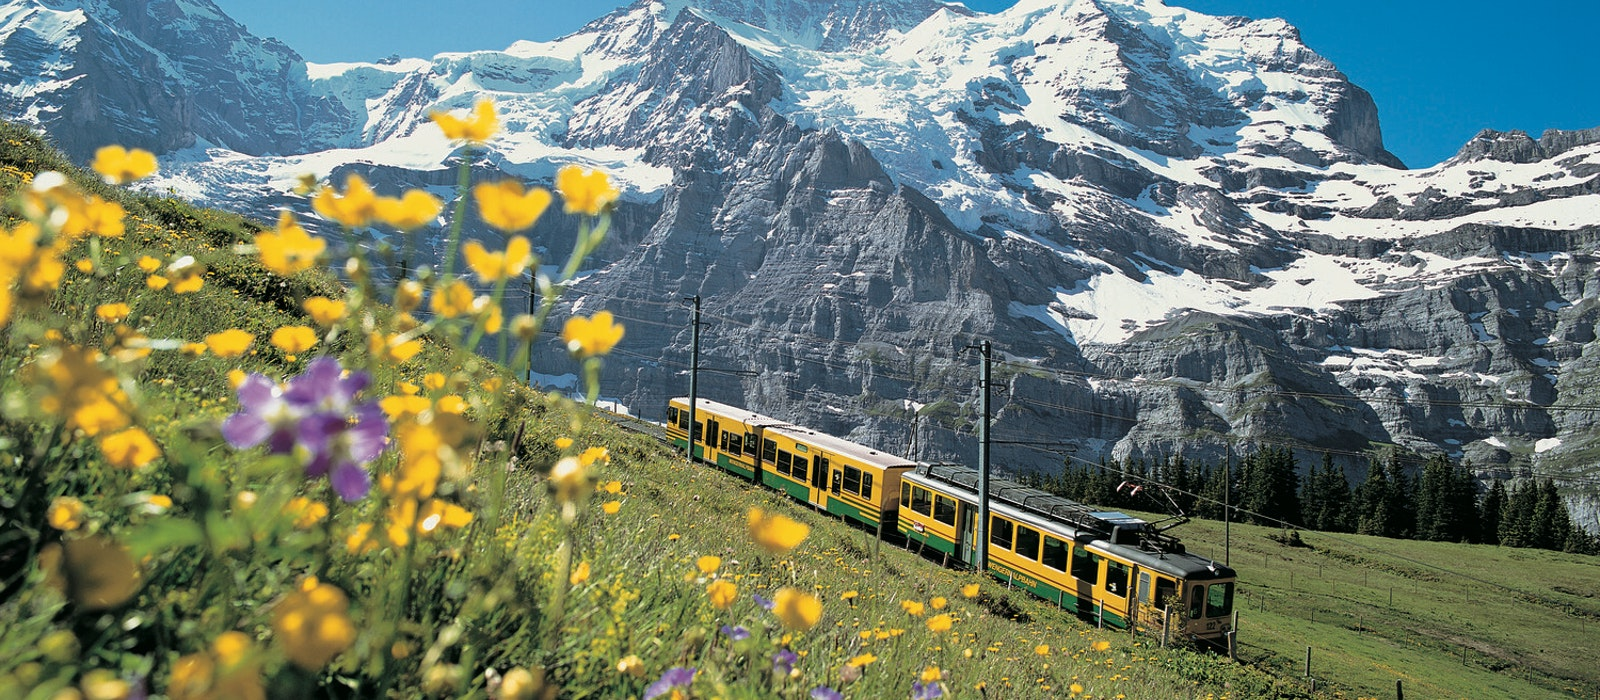 Jungfraujoch is a part of the Bernese Alps that connects two peaks: Mönch and Jungfrau.